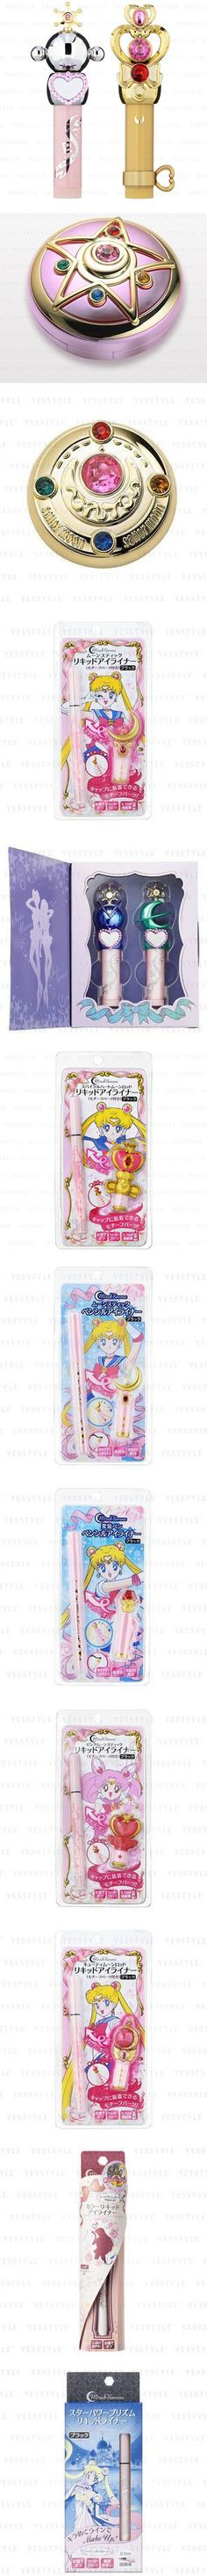 Sailor Moon beauty products. I don't even wear make up, but I want these. That's the power of their merchandise. Visual. Inspirational. Internet.